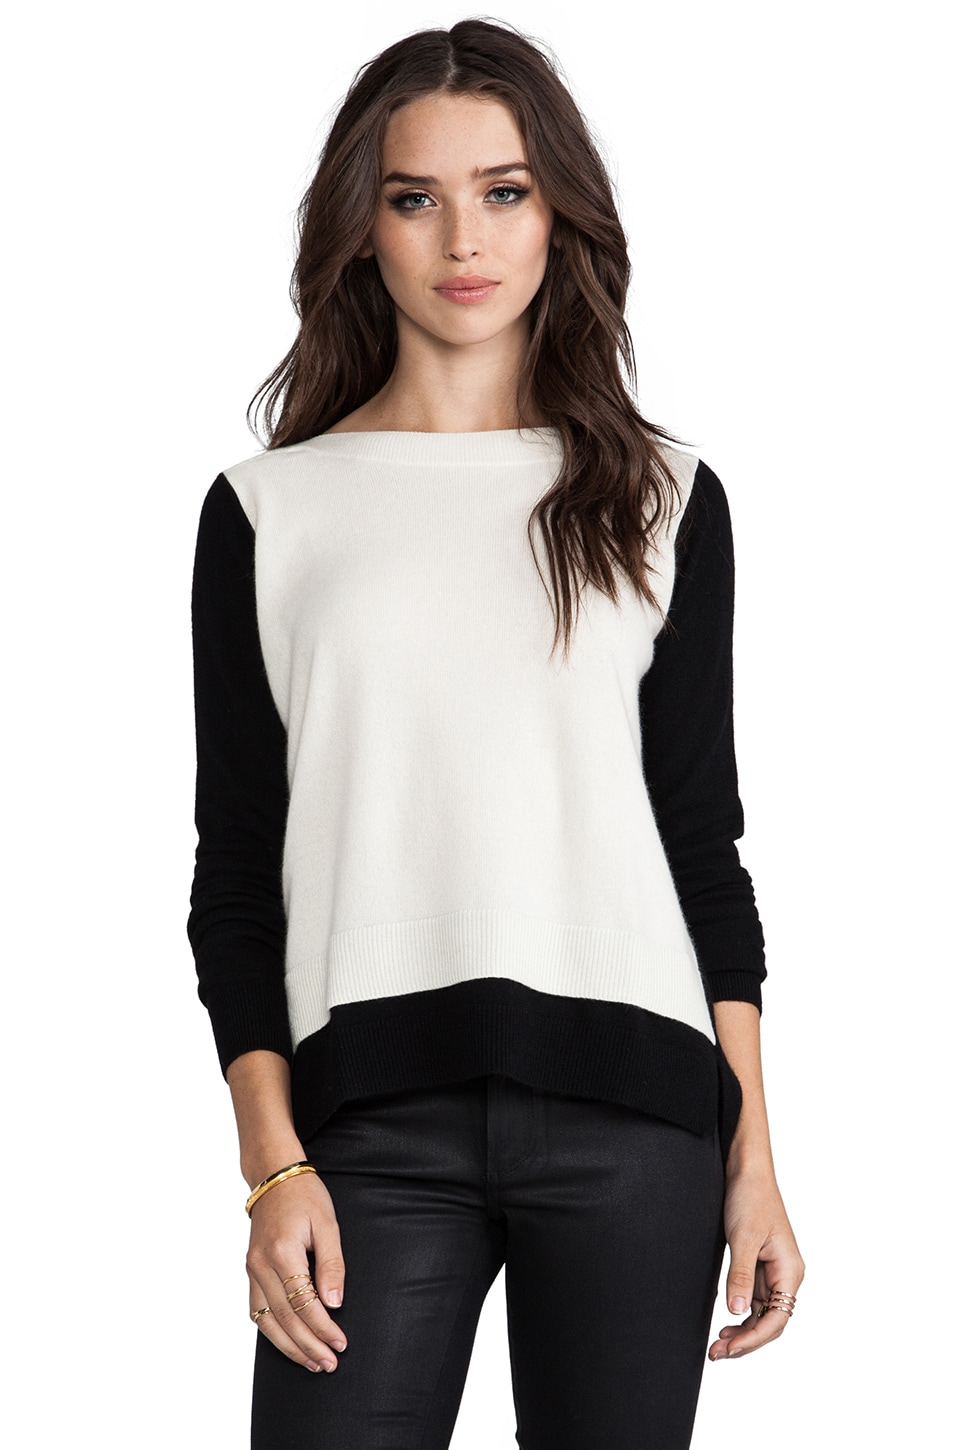 Autumn Cashmere 2-Tone Layered Boatneck Sweater in Black/White